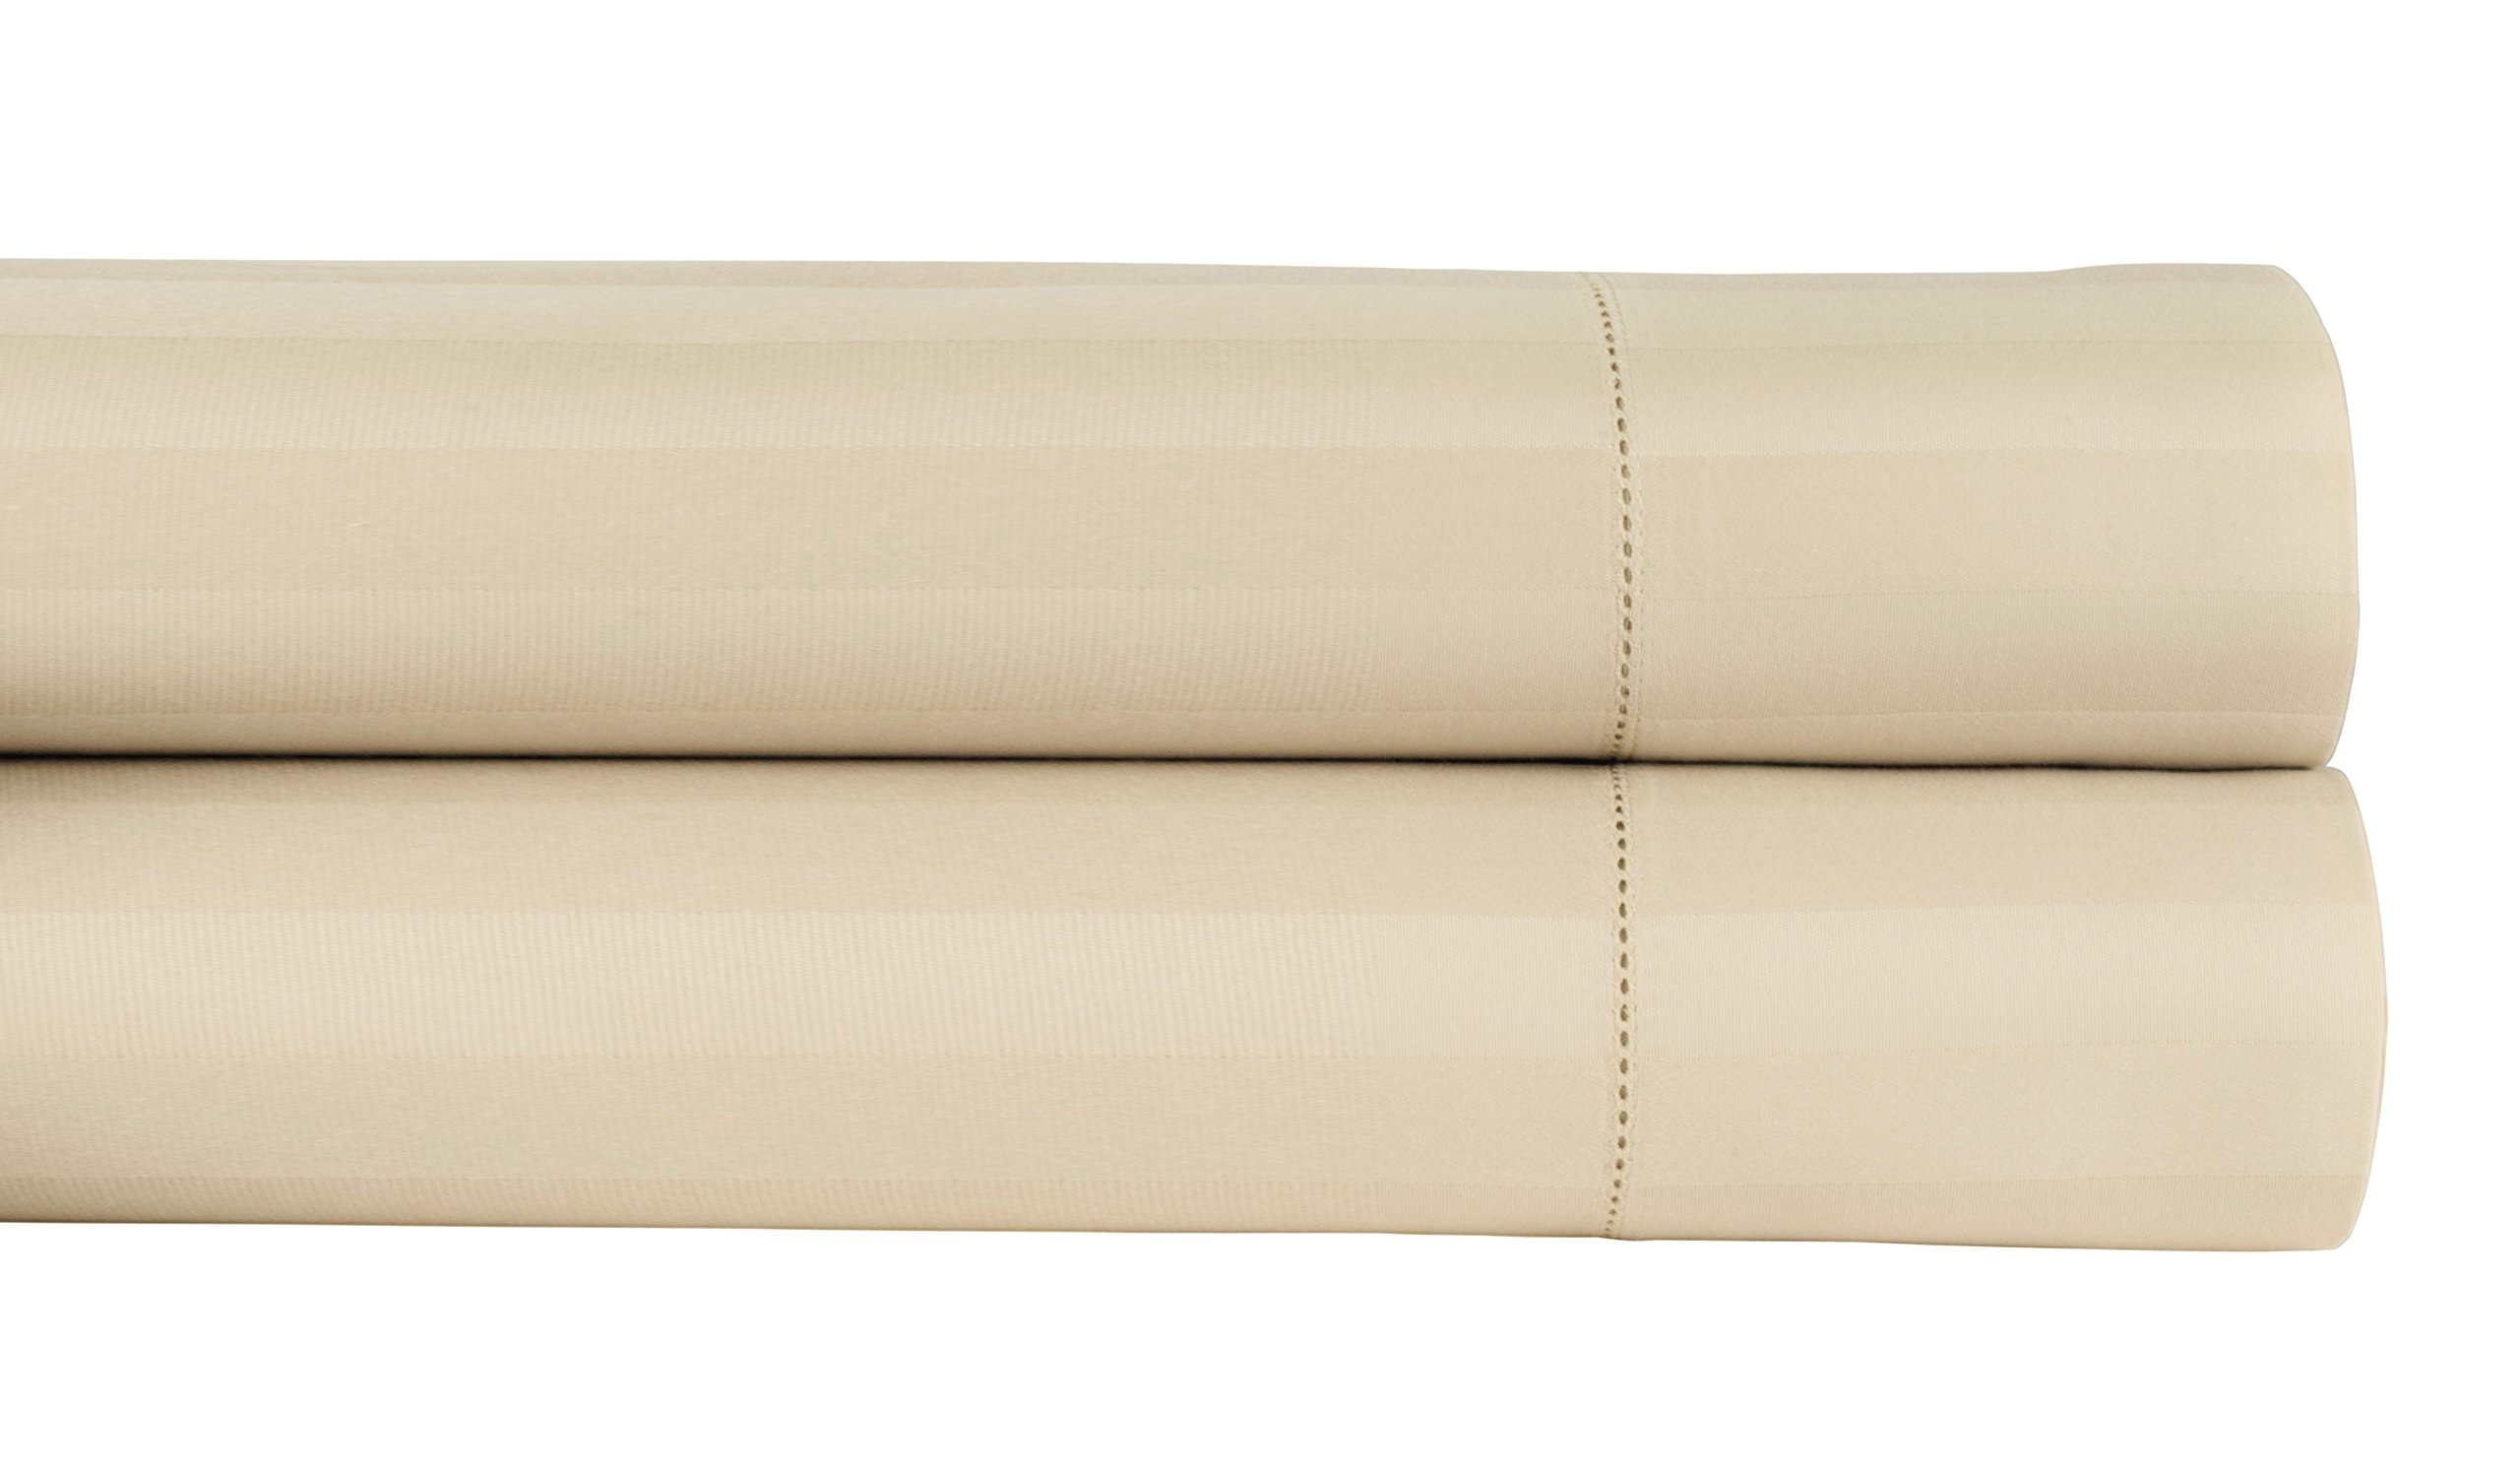 Threadmill Home Linen 500 Thread Count Damask Stripe 100% ELS Cotton Sheets, Set of 2 King Pillowcases, Luxury Bedding, Smooth Stripe Sateen, Beige by